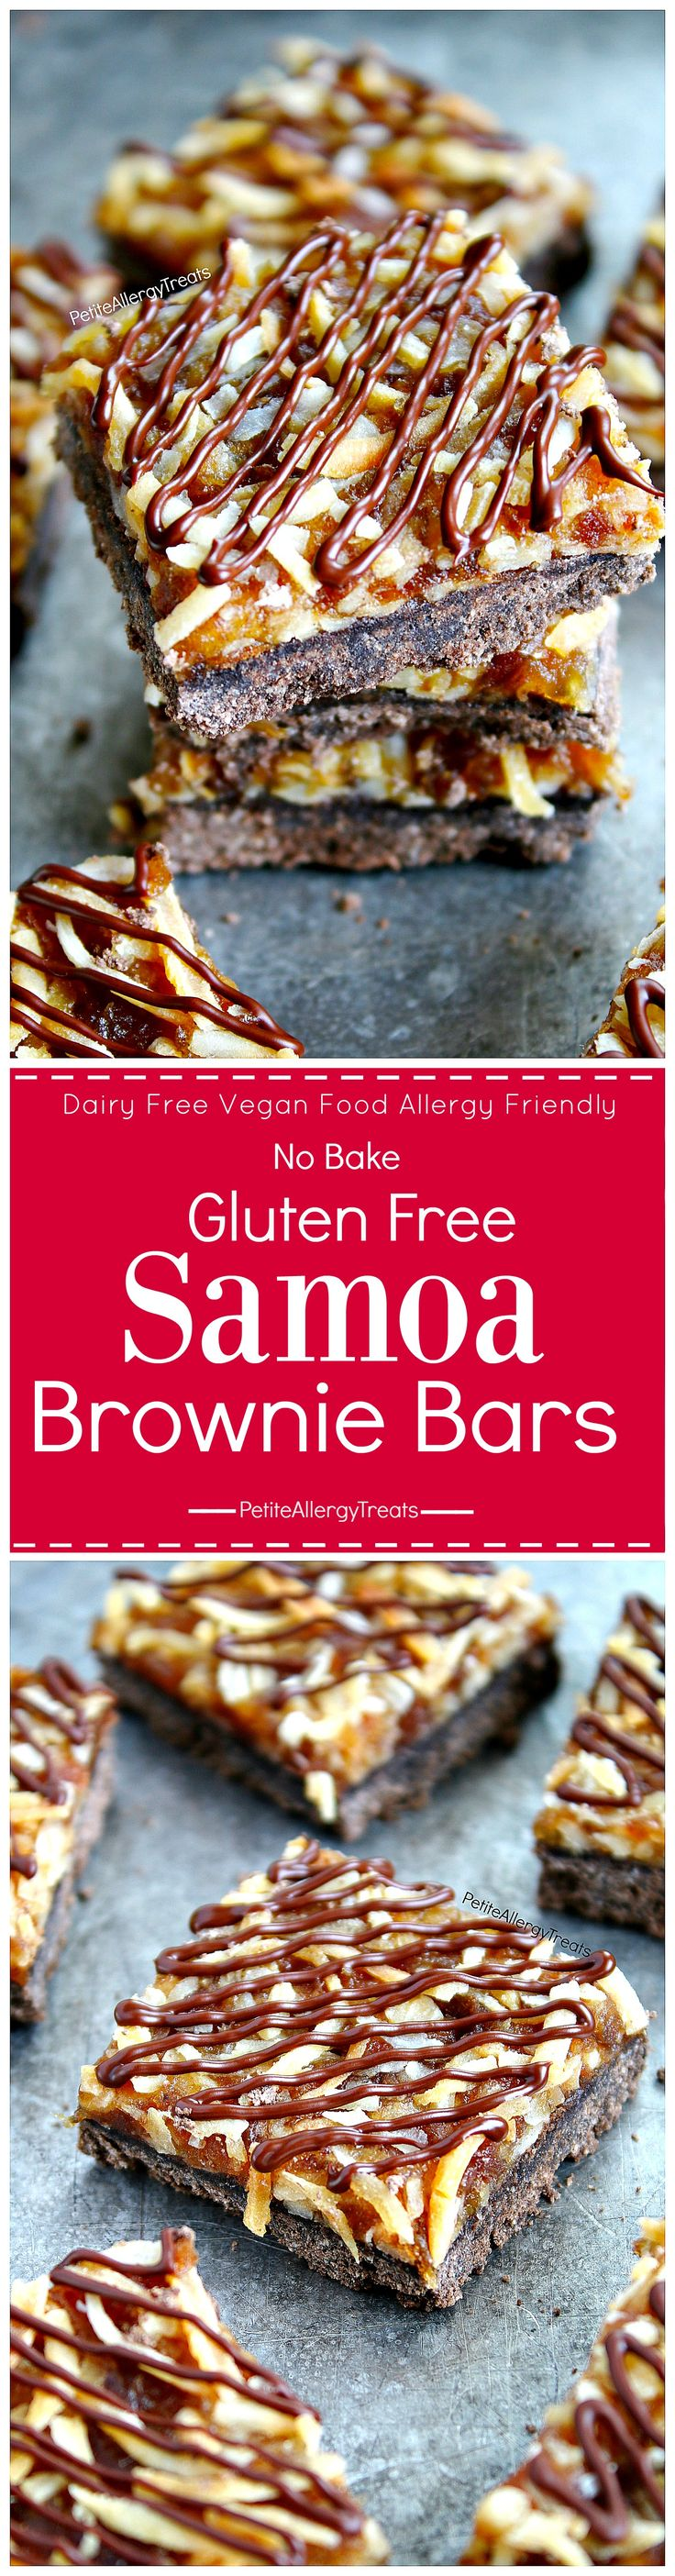 Gluten Free Samoa Brownie Bars Recipe (Vegan dairy free)- No bake Girl Scout toasted coconut caramel brownie bars! Food allergy friendly!